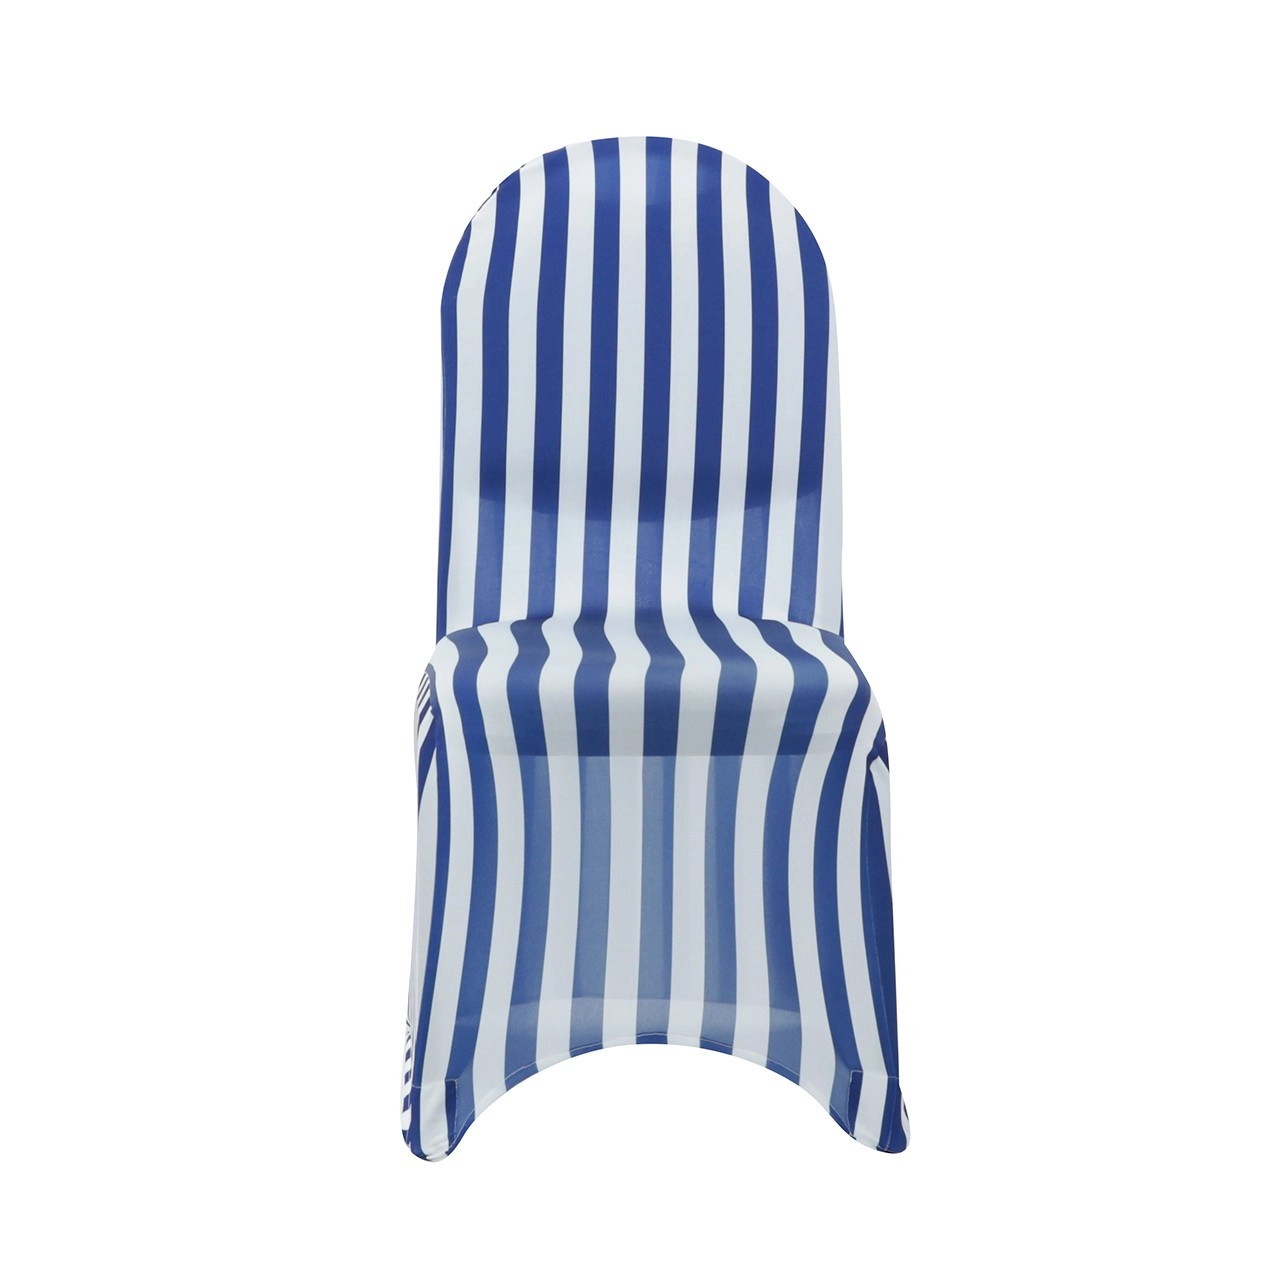 blue spandex chair covers classic sofas and chairs stretch banquet cover striped white royal wholesale